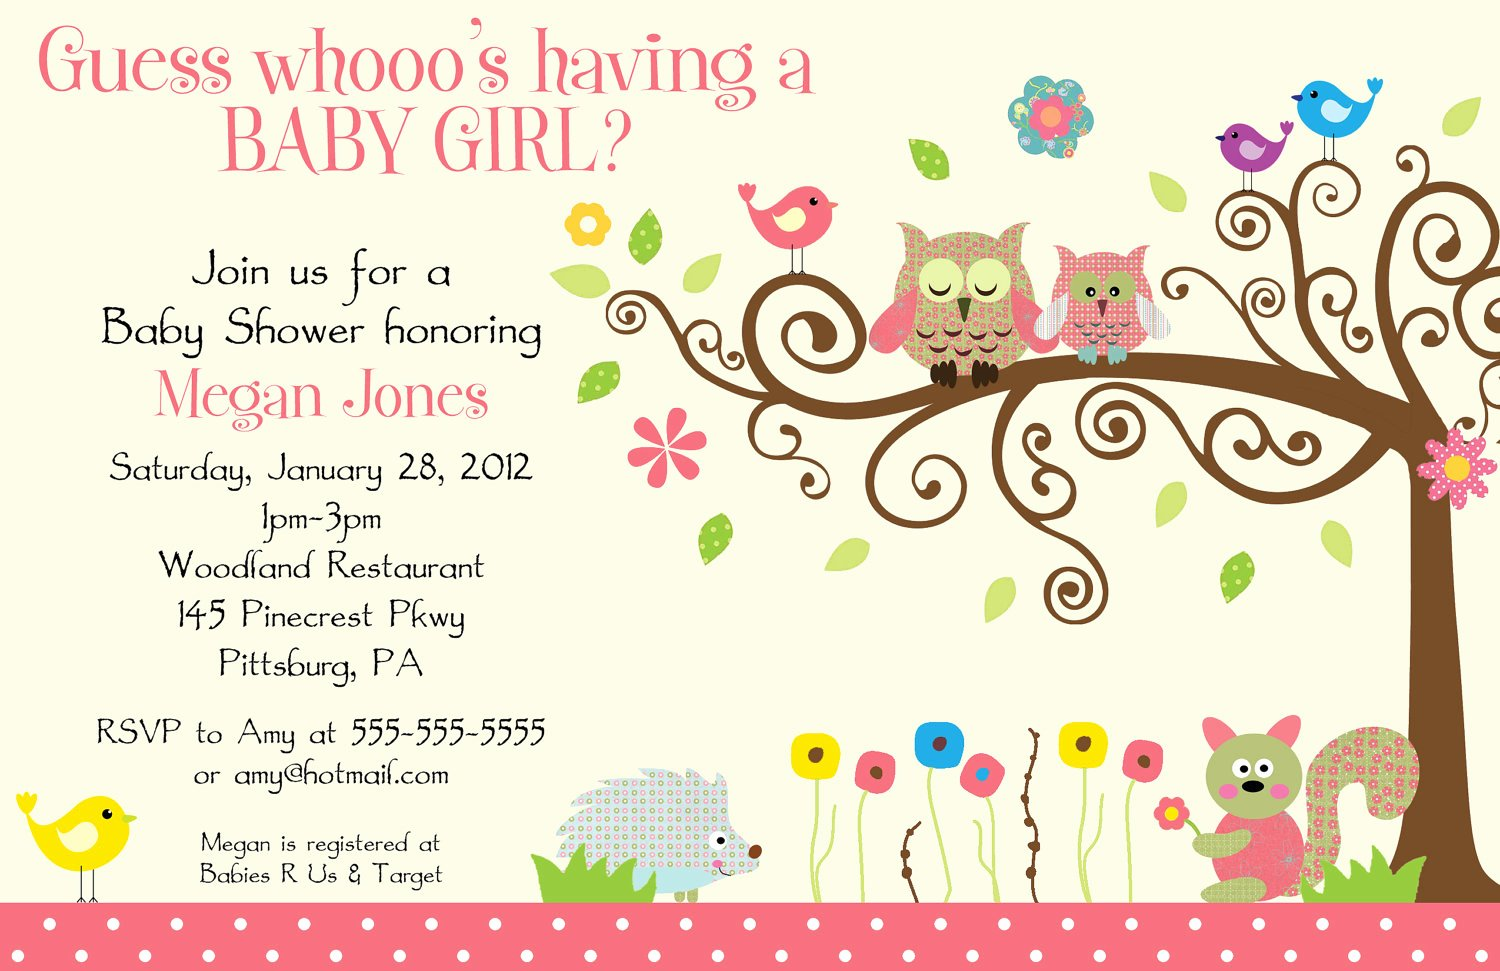 Baby Girl Announcement Template New Baby Shower Help — the Bump